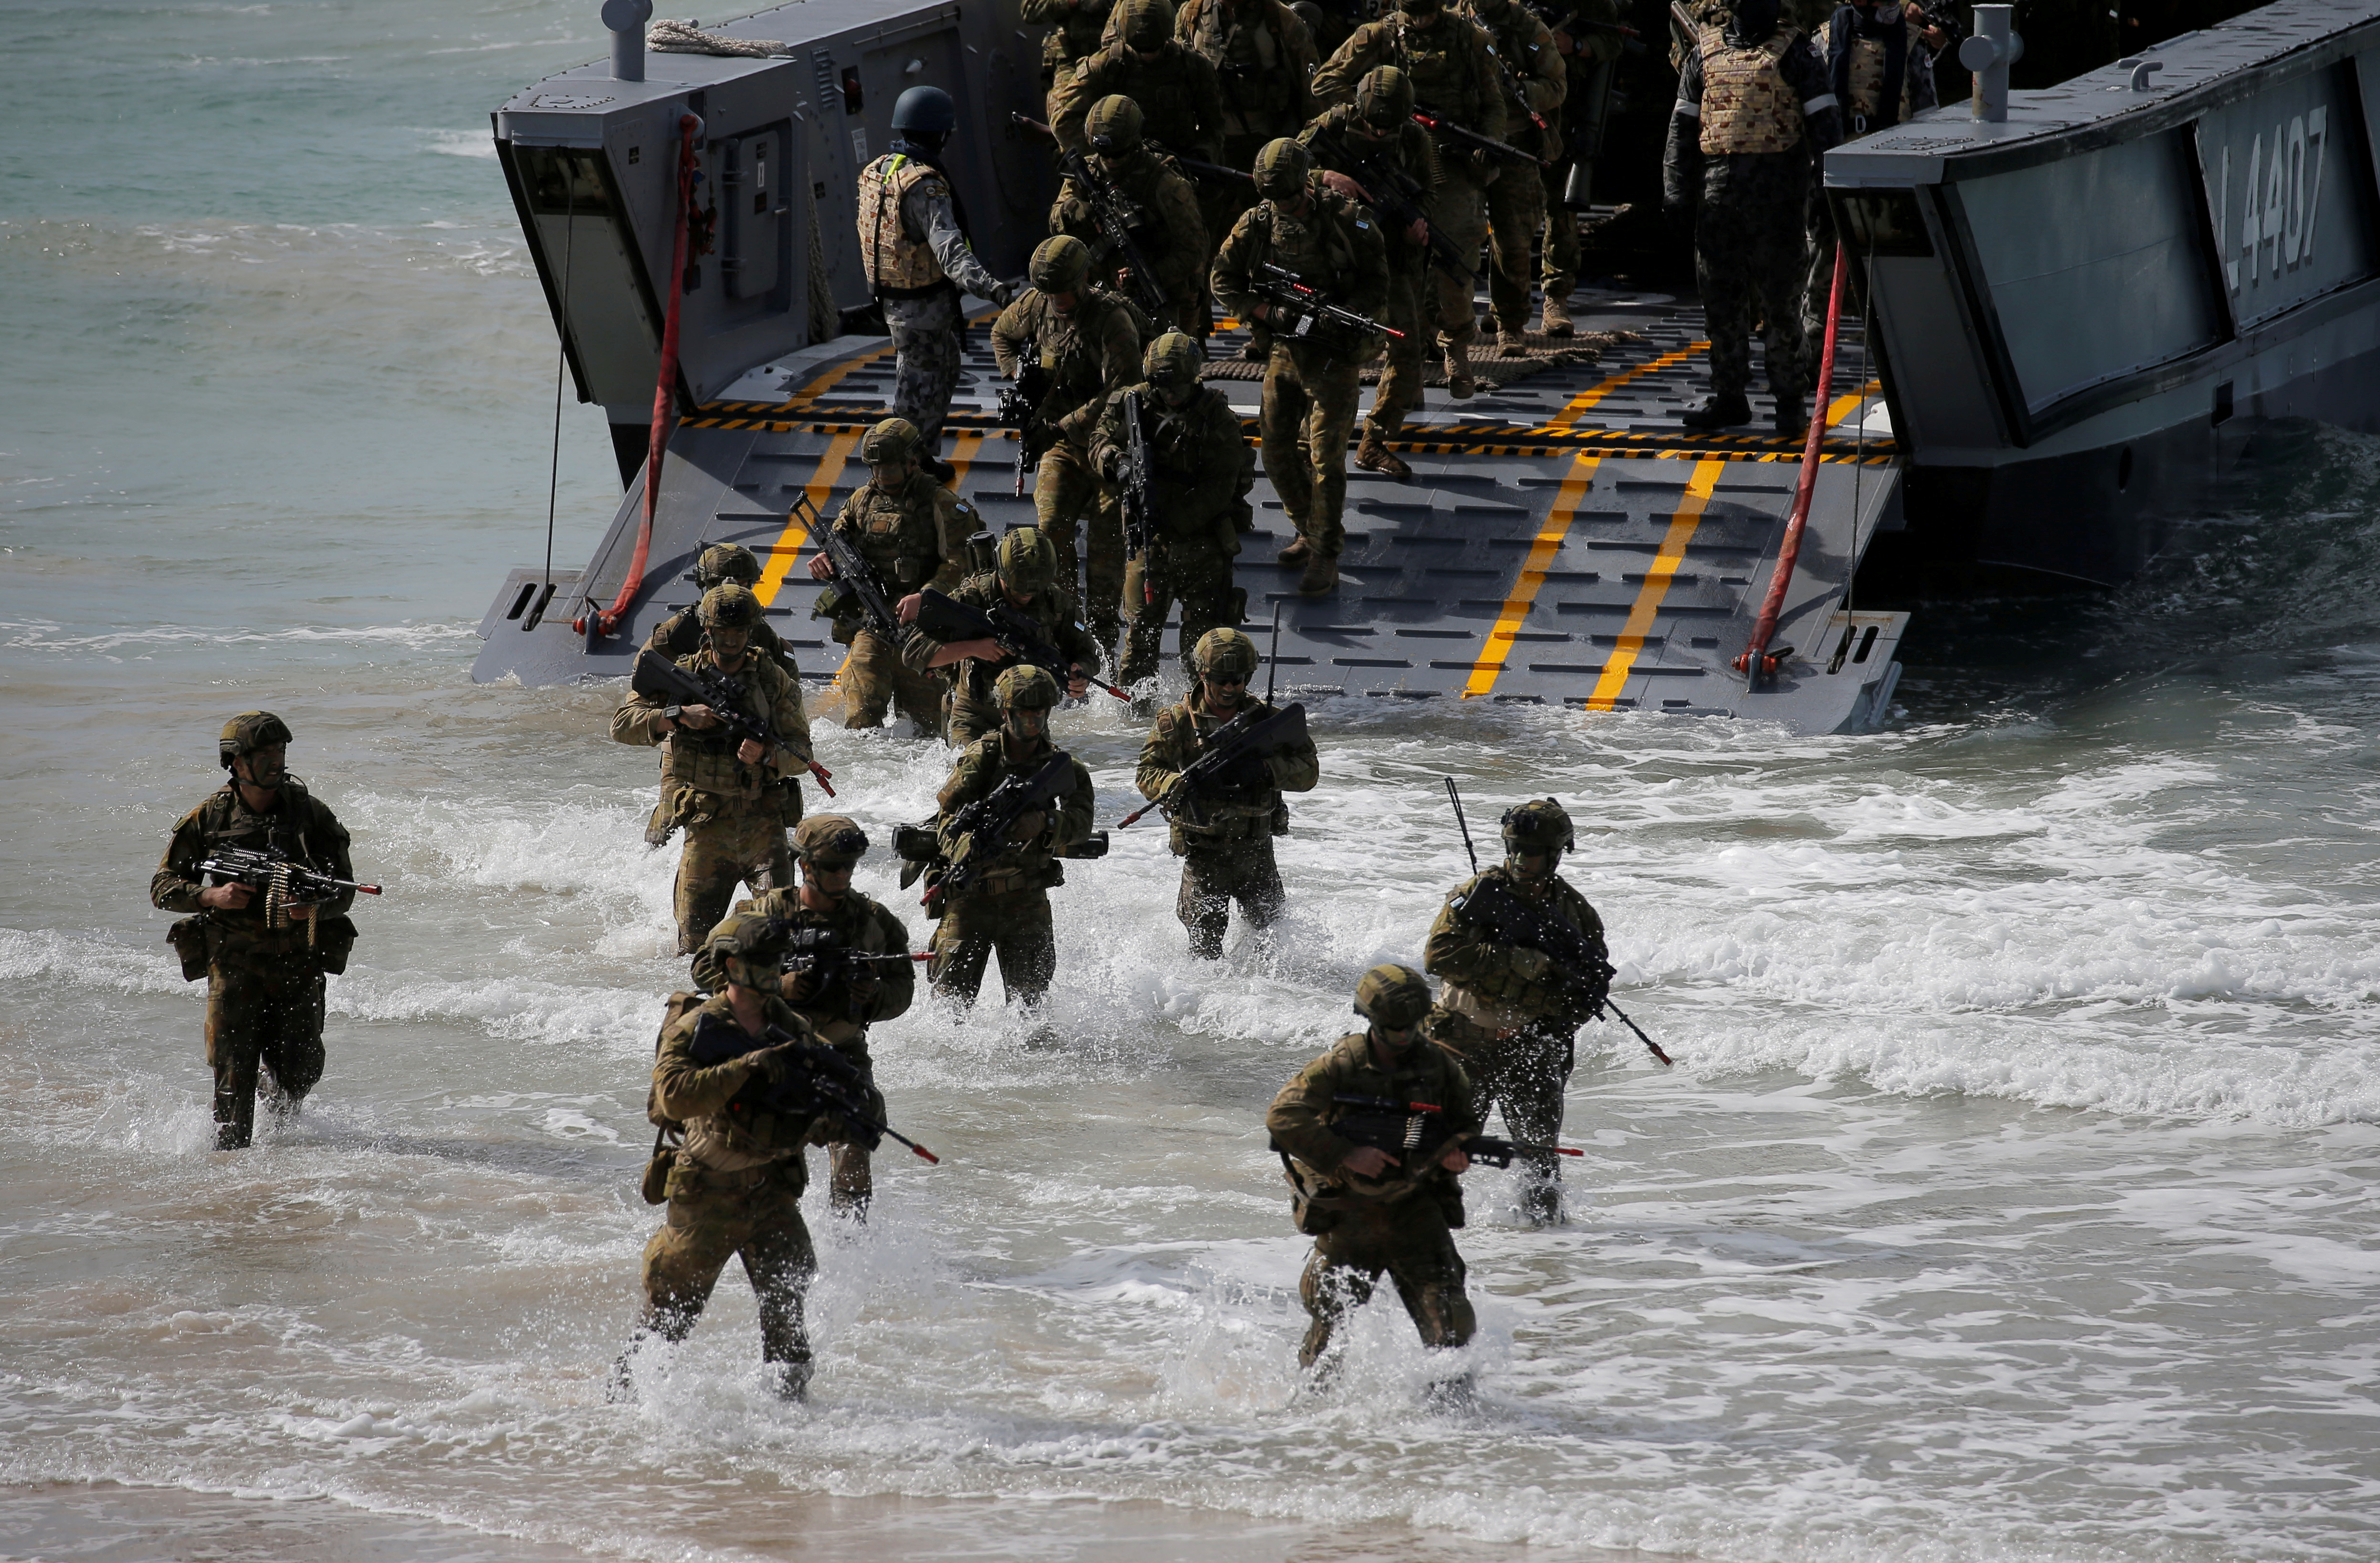 Soldiers from the Australian Army's 3rd Brigade step into the ocean during an amphibious assault landing on Langham Beach during the Talisman Saber joint military exercises between Australia and the United States in Queensland, northeast Australia, July 13, 2017.  REUTERS/Jason Reed